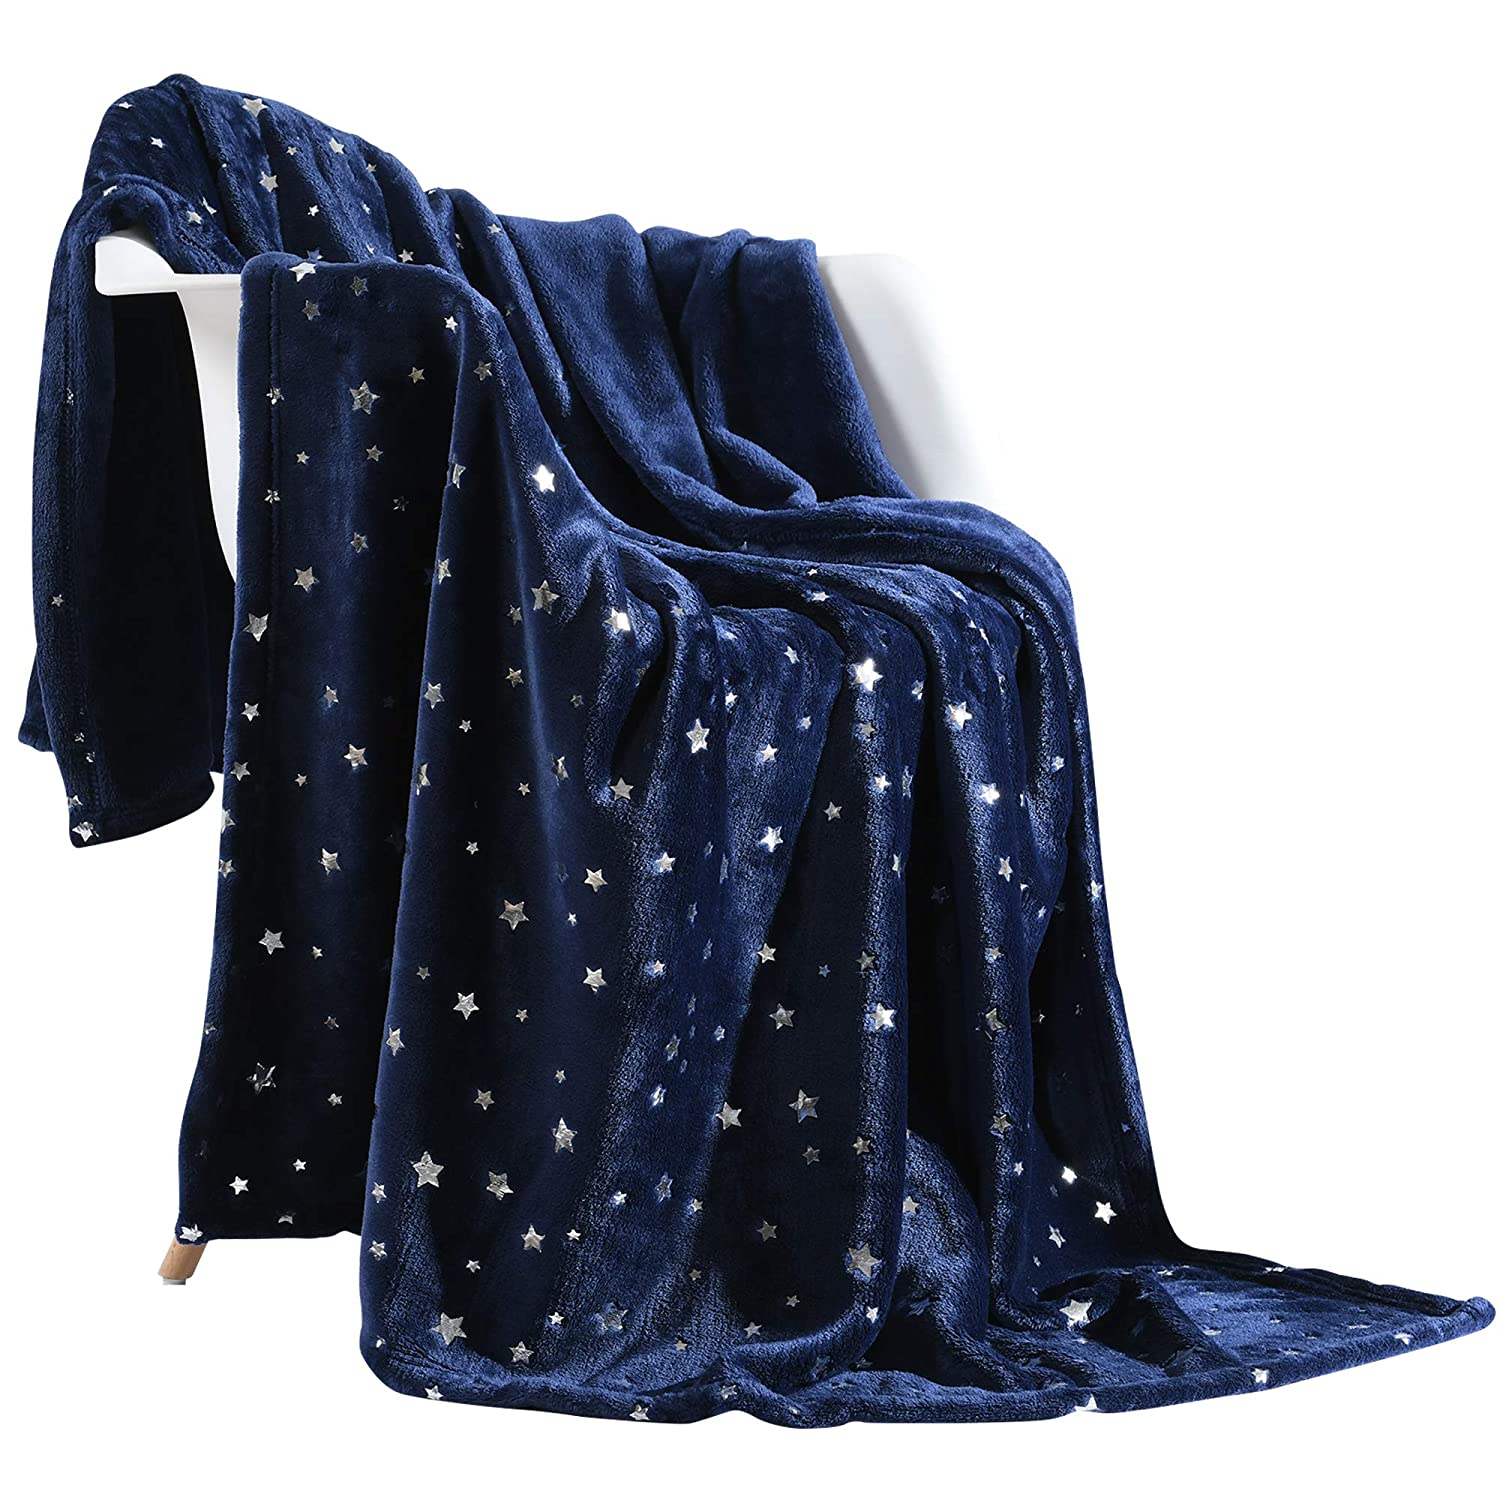 "NANPIPER Throw Blanket, Ultra Soft Thick Microplush Bed Blanket, All Season Premium Fluffy Microfiber Fleece Throw for Sofa Couch (Twin Size 65""x80"", Navy Blue)"